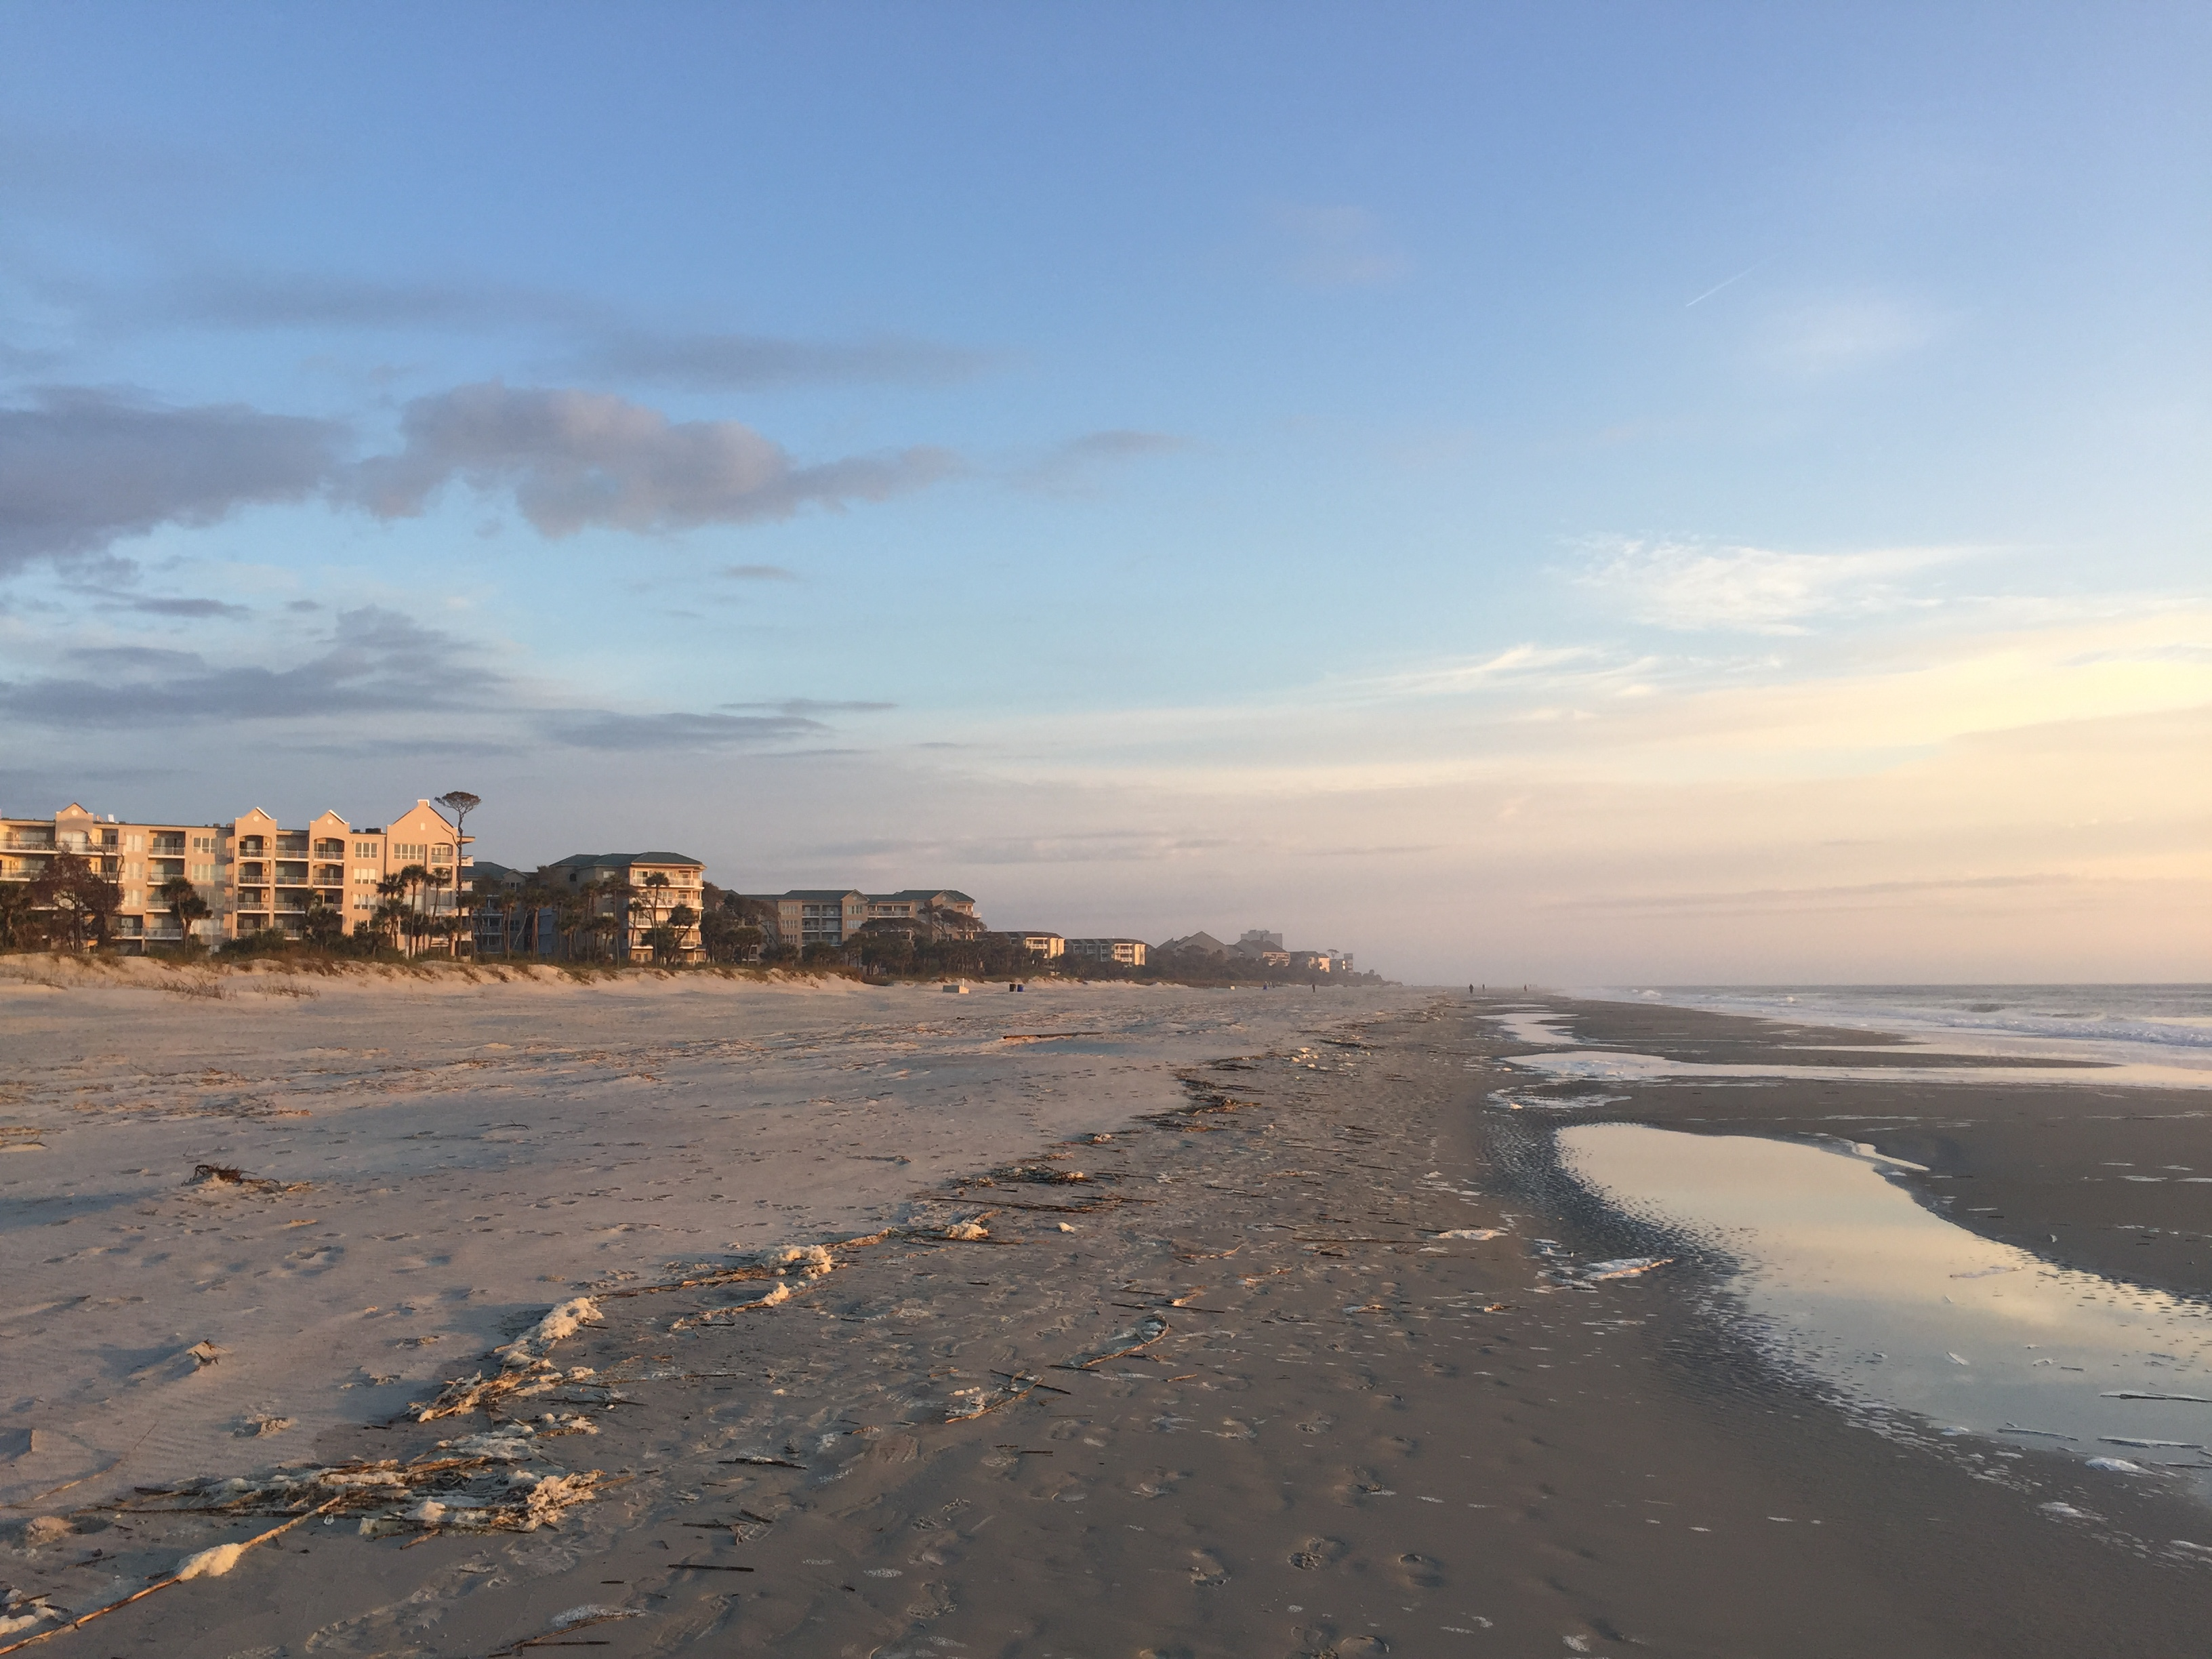 Deserted beach Hilton Head